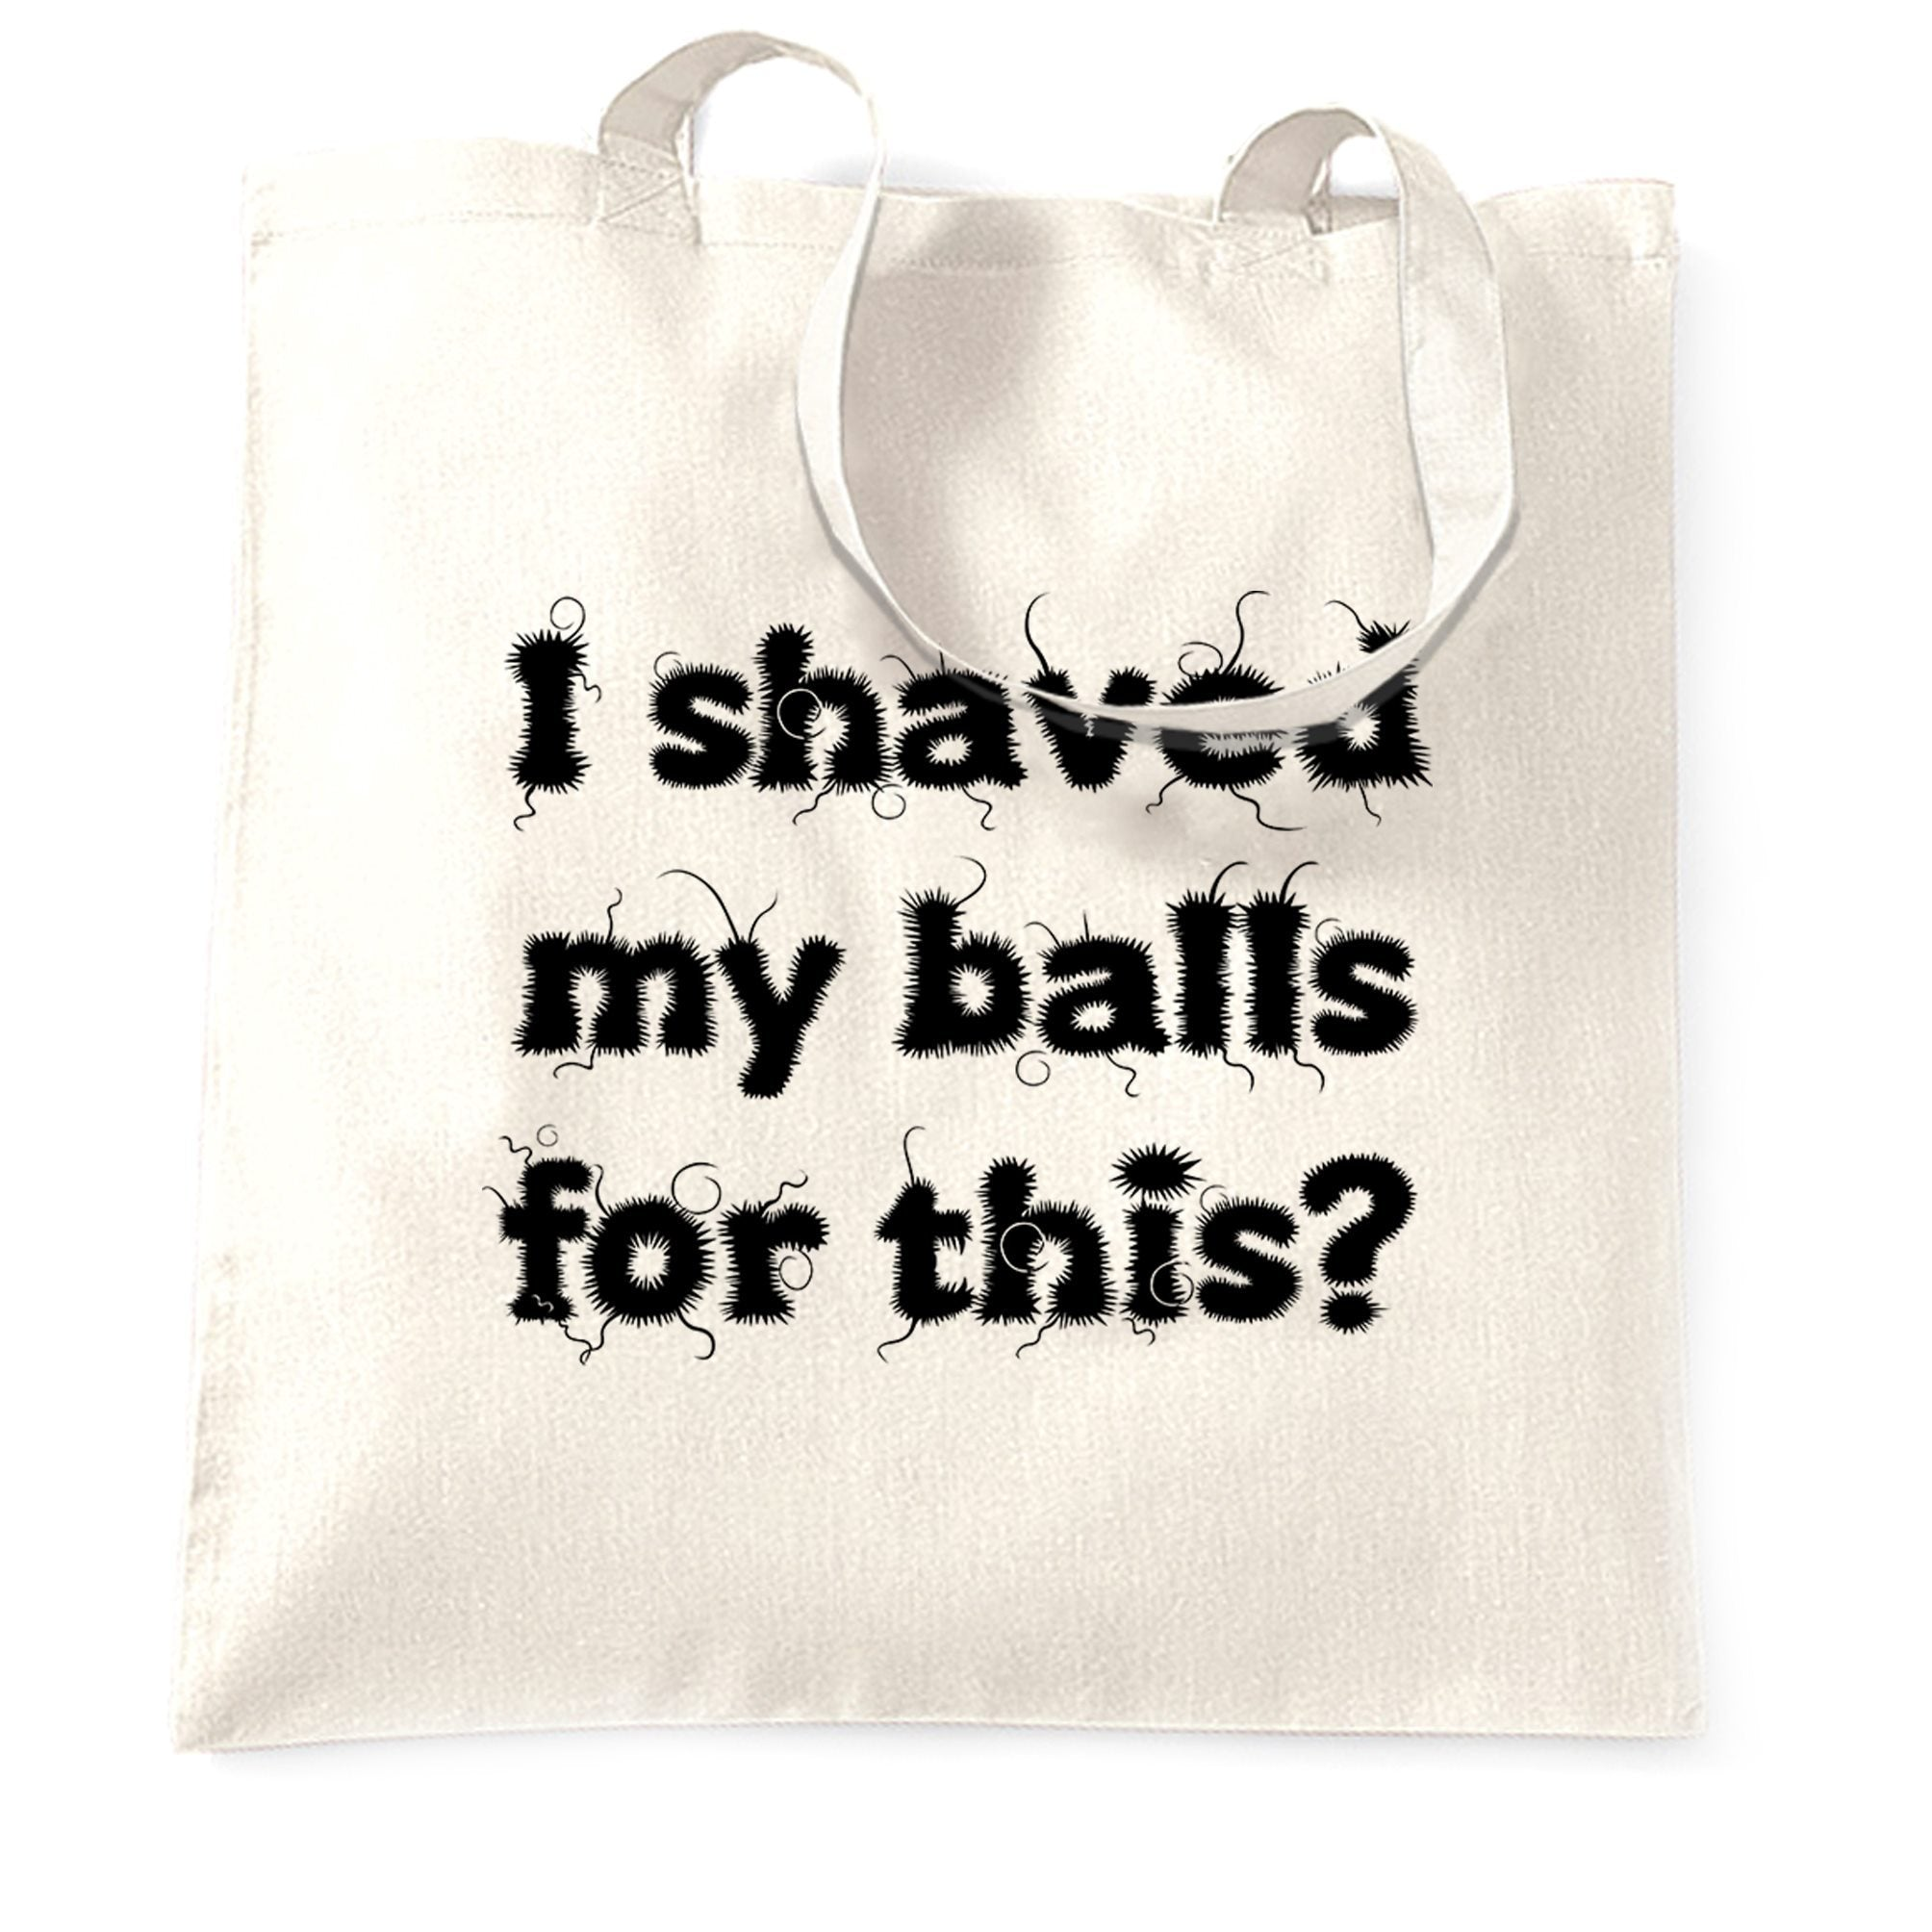 Rude Joke Tote Bag I Shaved For This Slogan